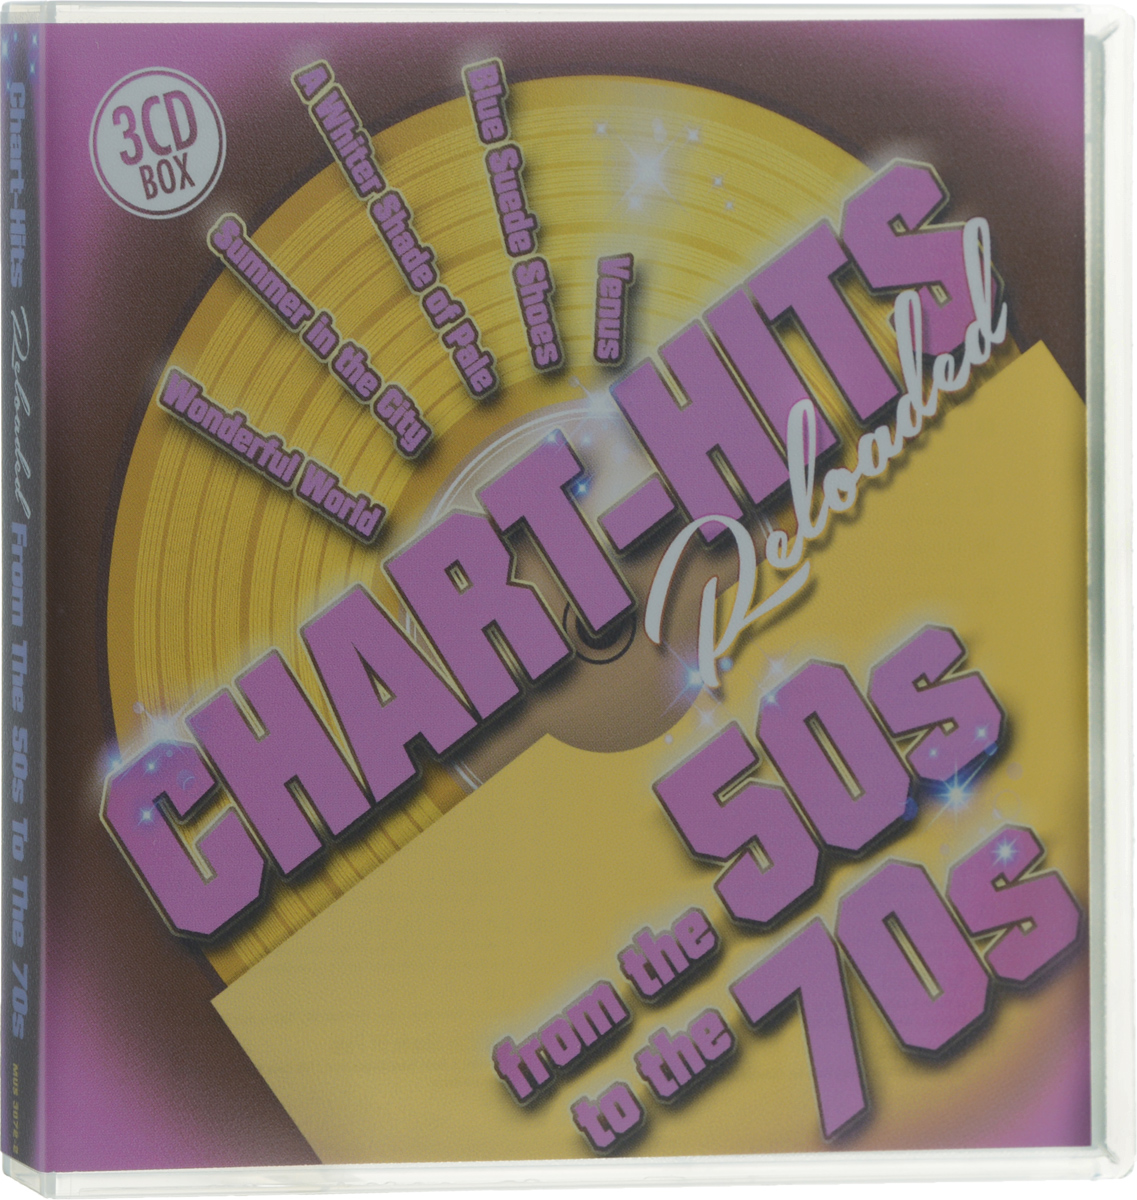 Chart-Hits Reloaded From The 50s To 70s (3 CD)